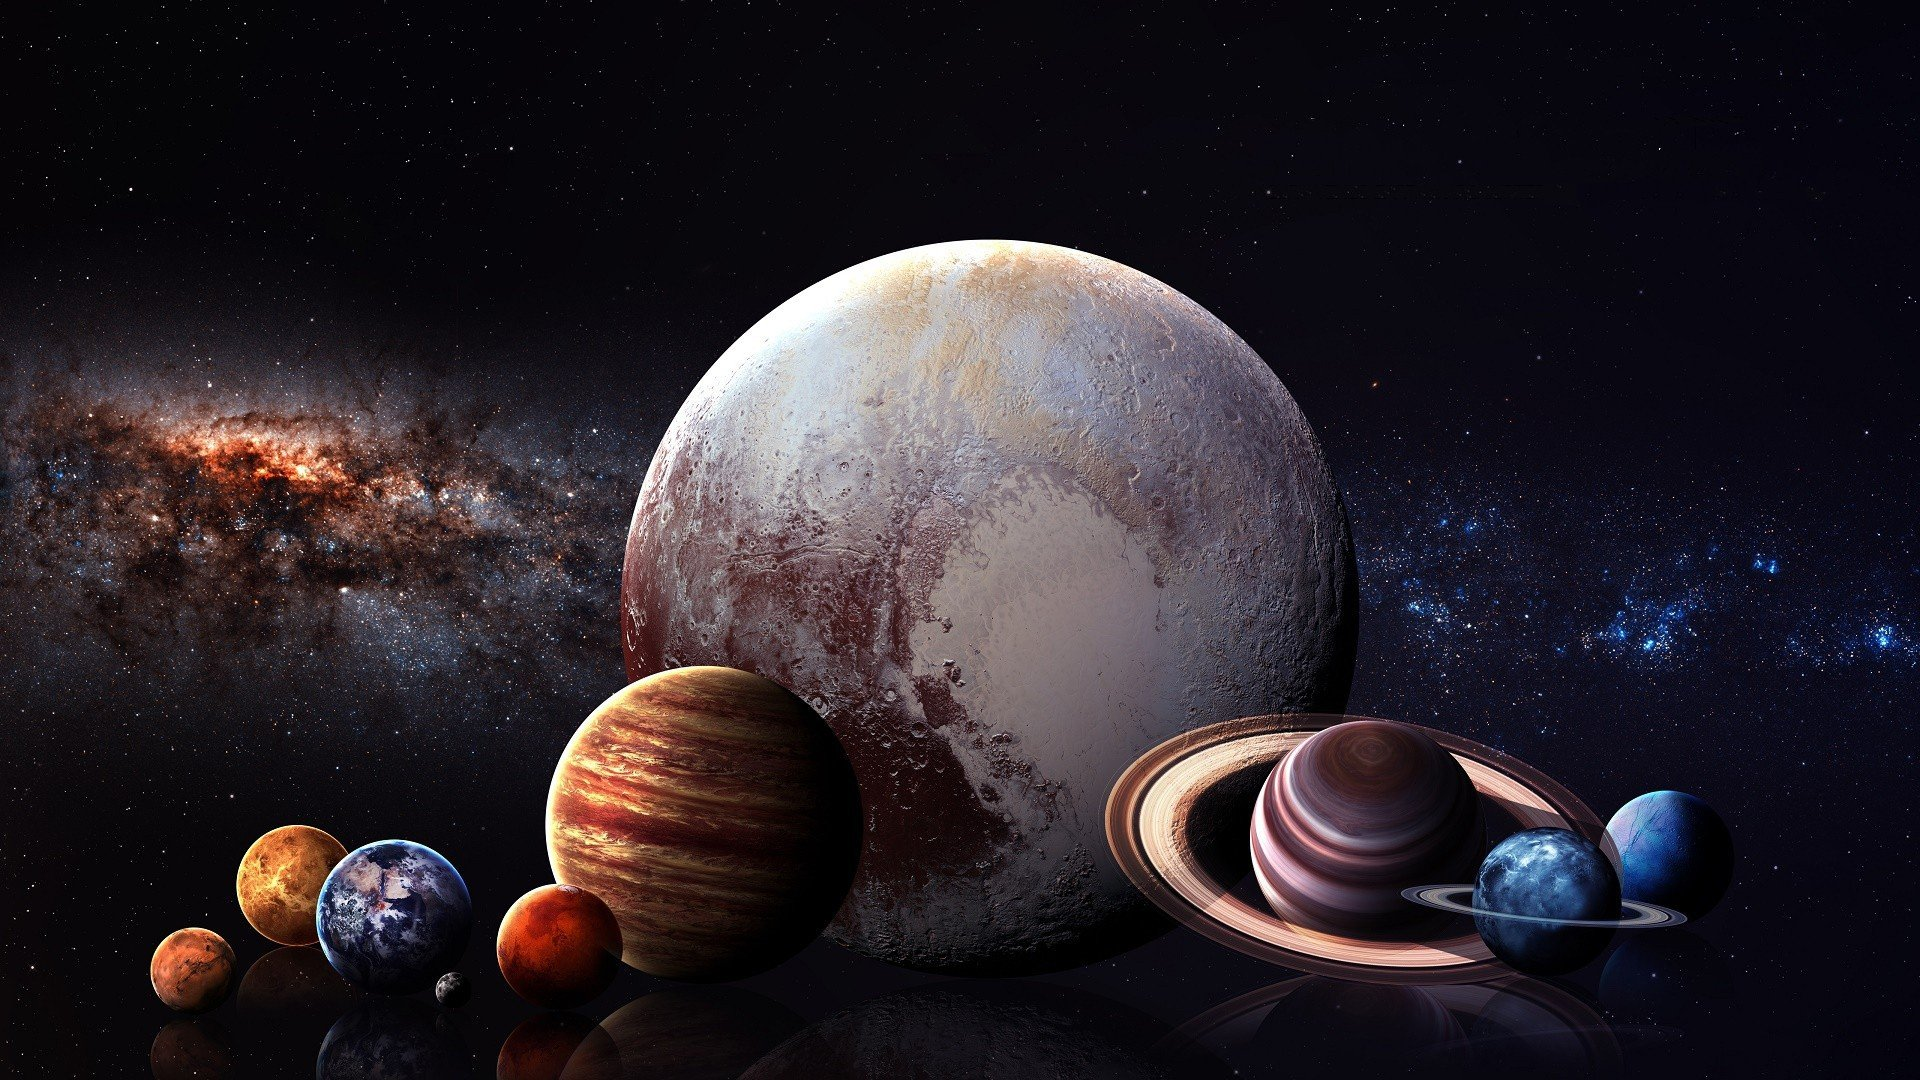 Space planet stars 3d render pluto new horizons - Solar system hd wallpapers 1080p ...